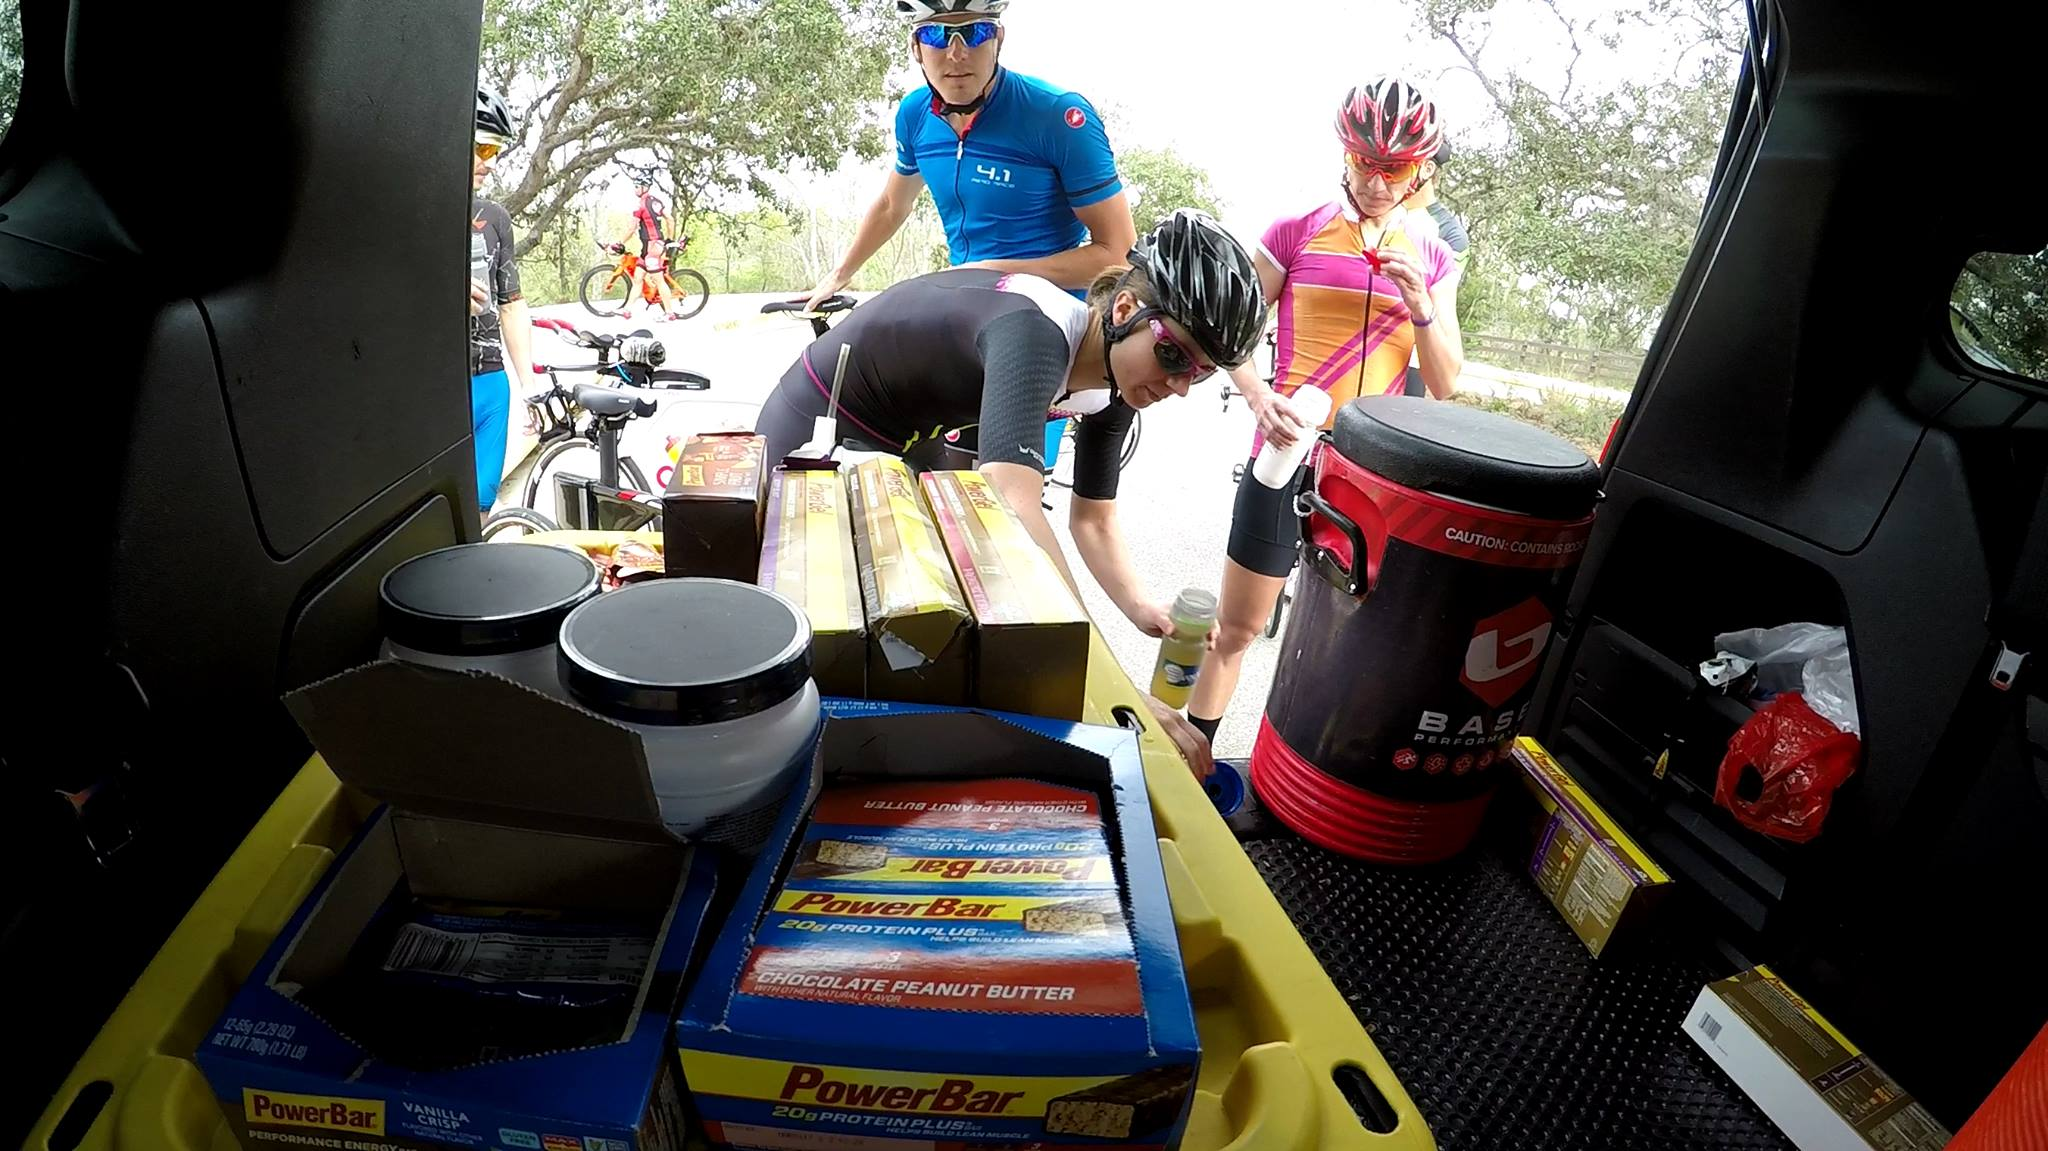 Refueling with PowerBar and BASE at the QT2 vehicle during a long ride at camp.  Photo Credit: Pedro Gomes